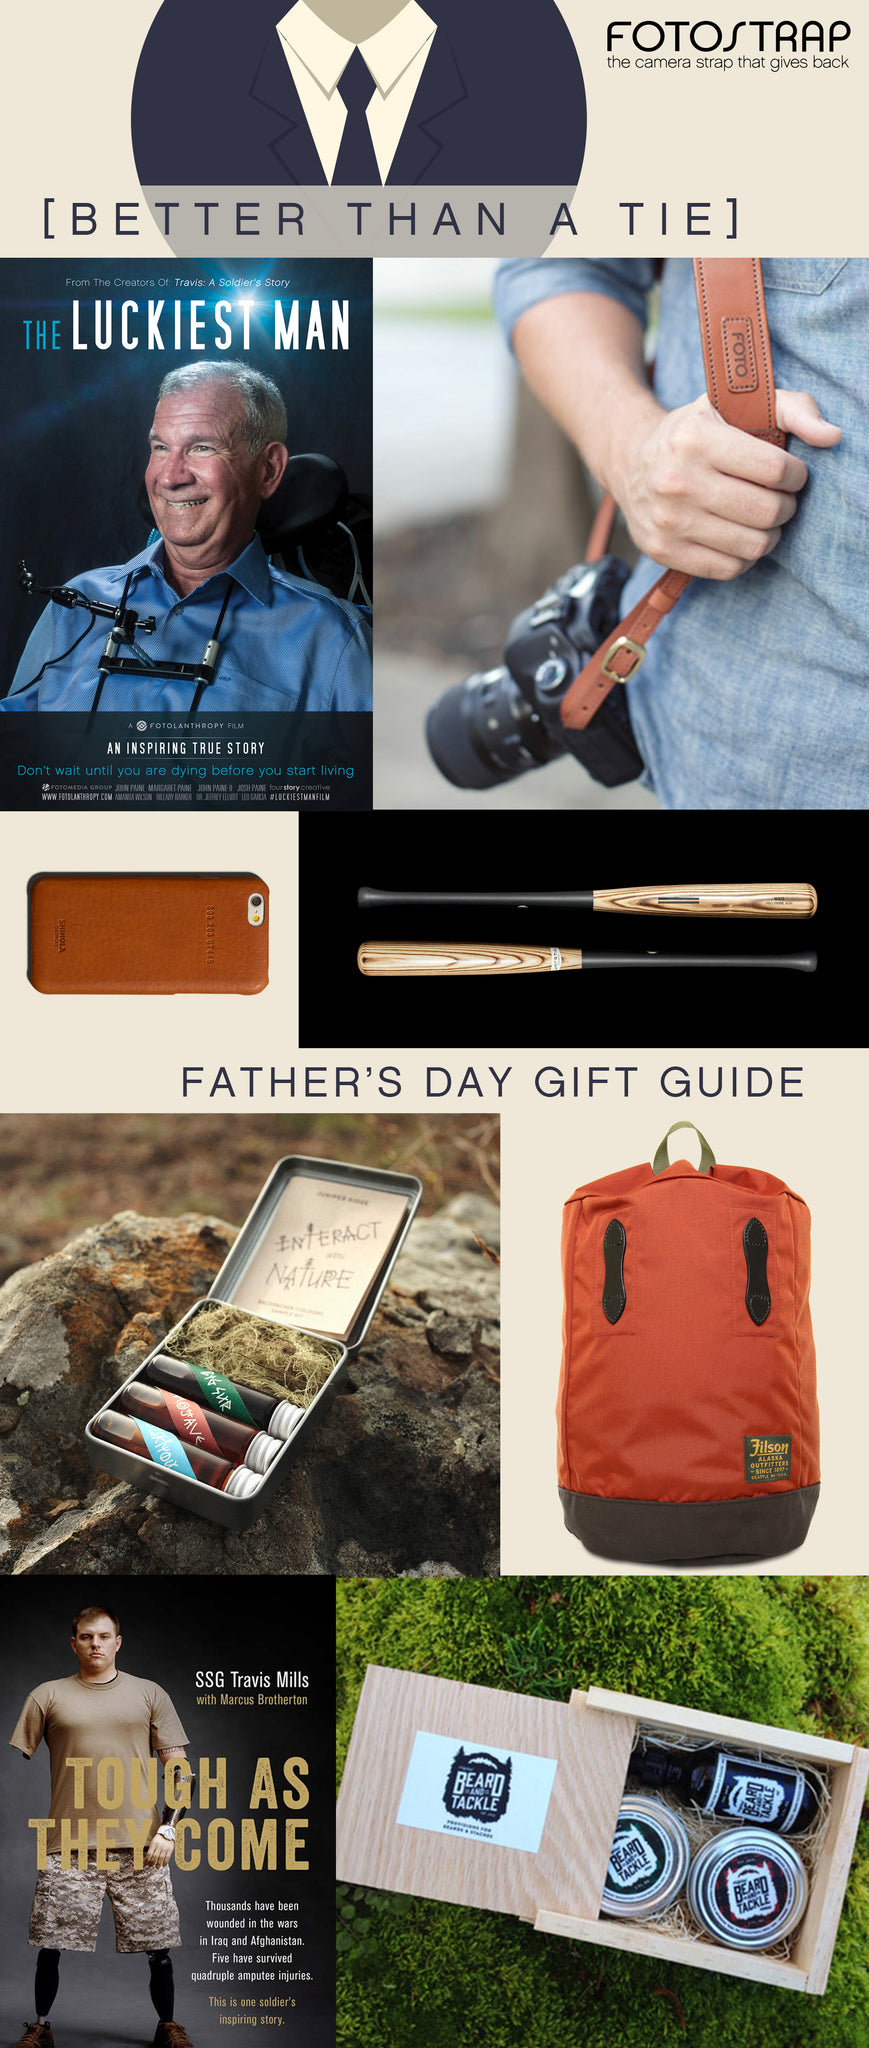 Better than a Tie Father's Day Gift Guide | FOTO Blog